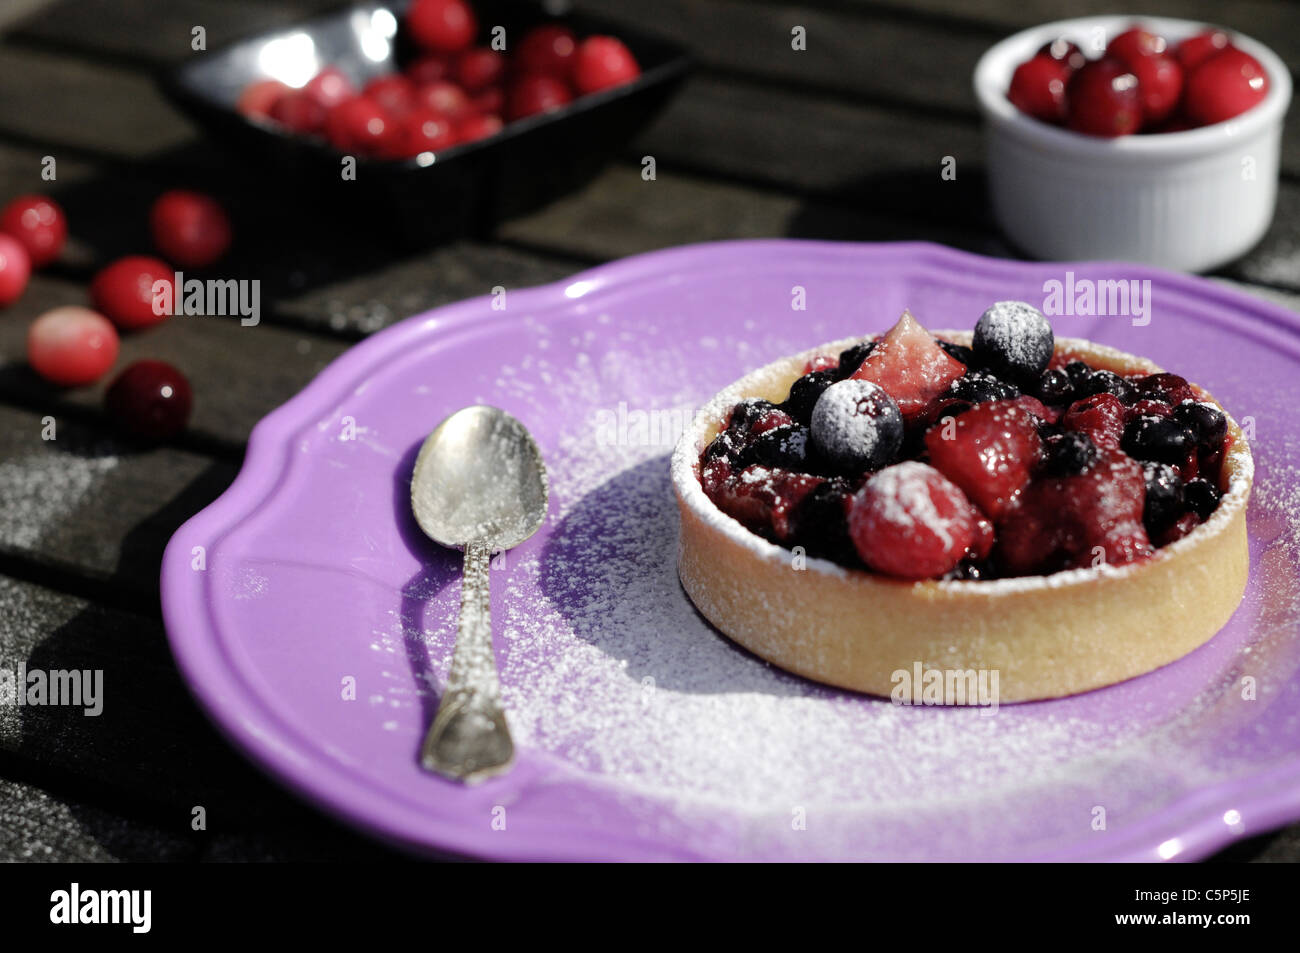 Berry tart outside on a purple  plate - Stock Image